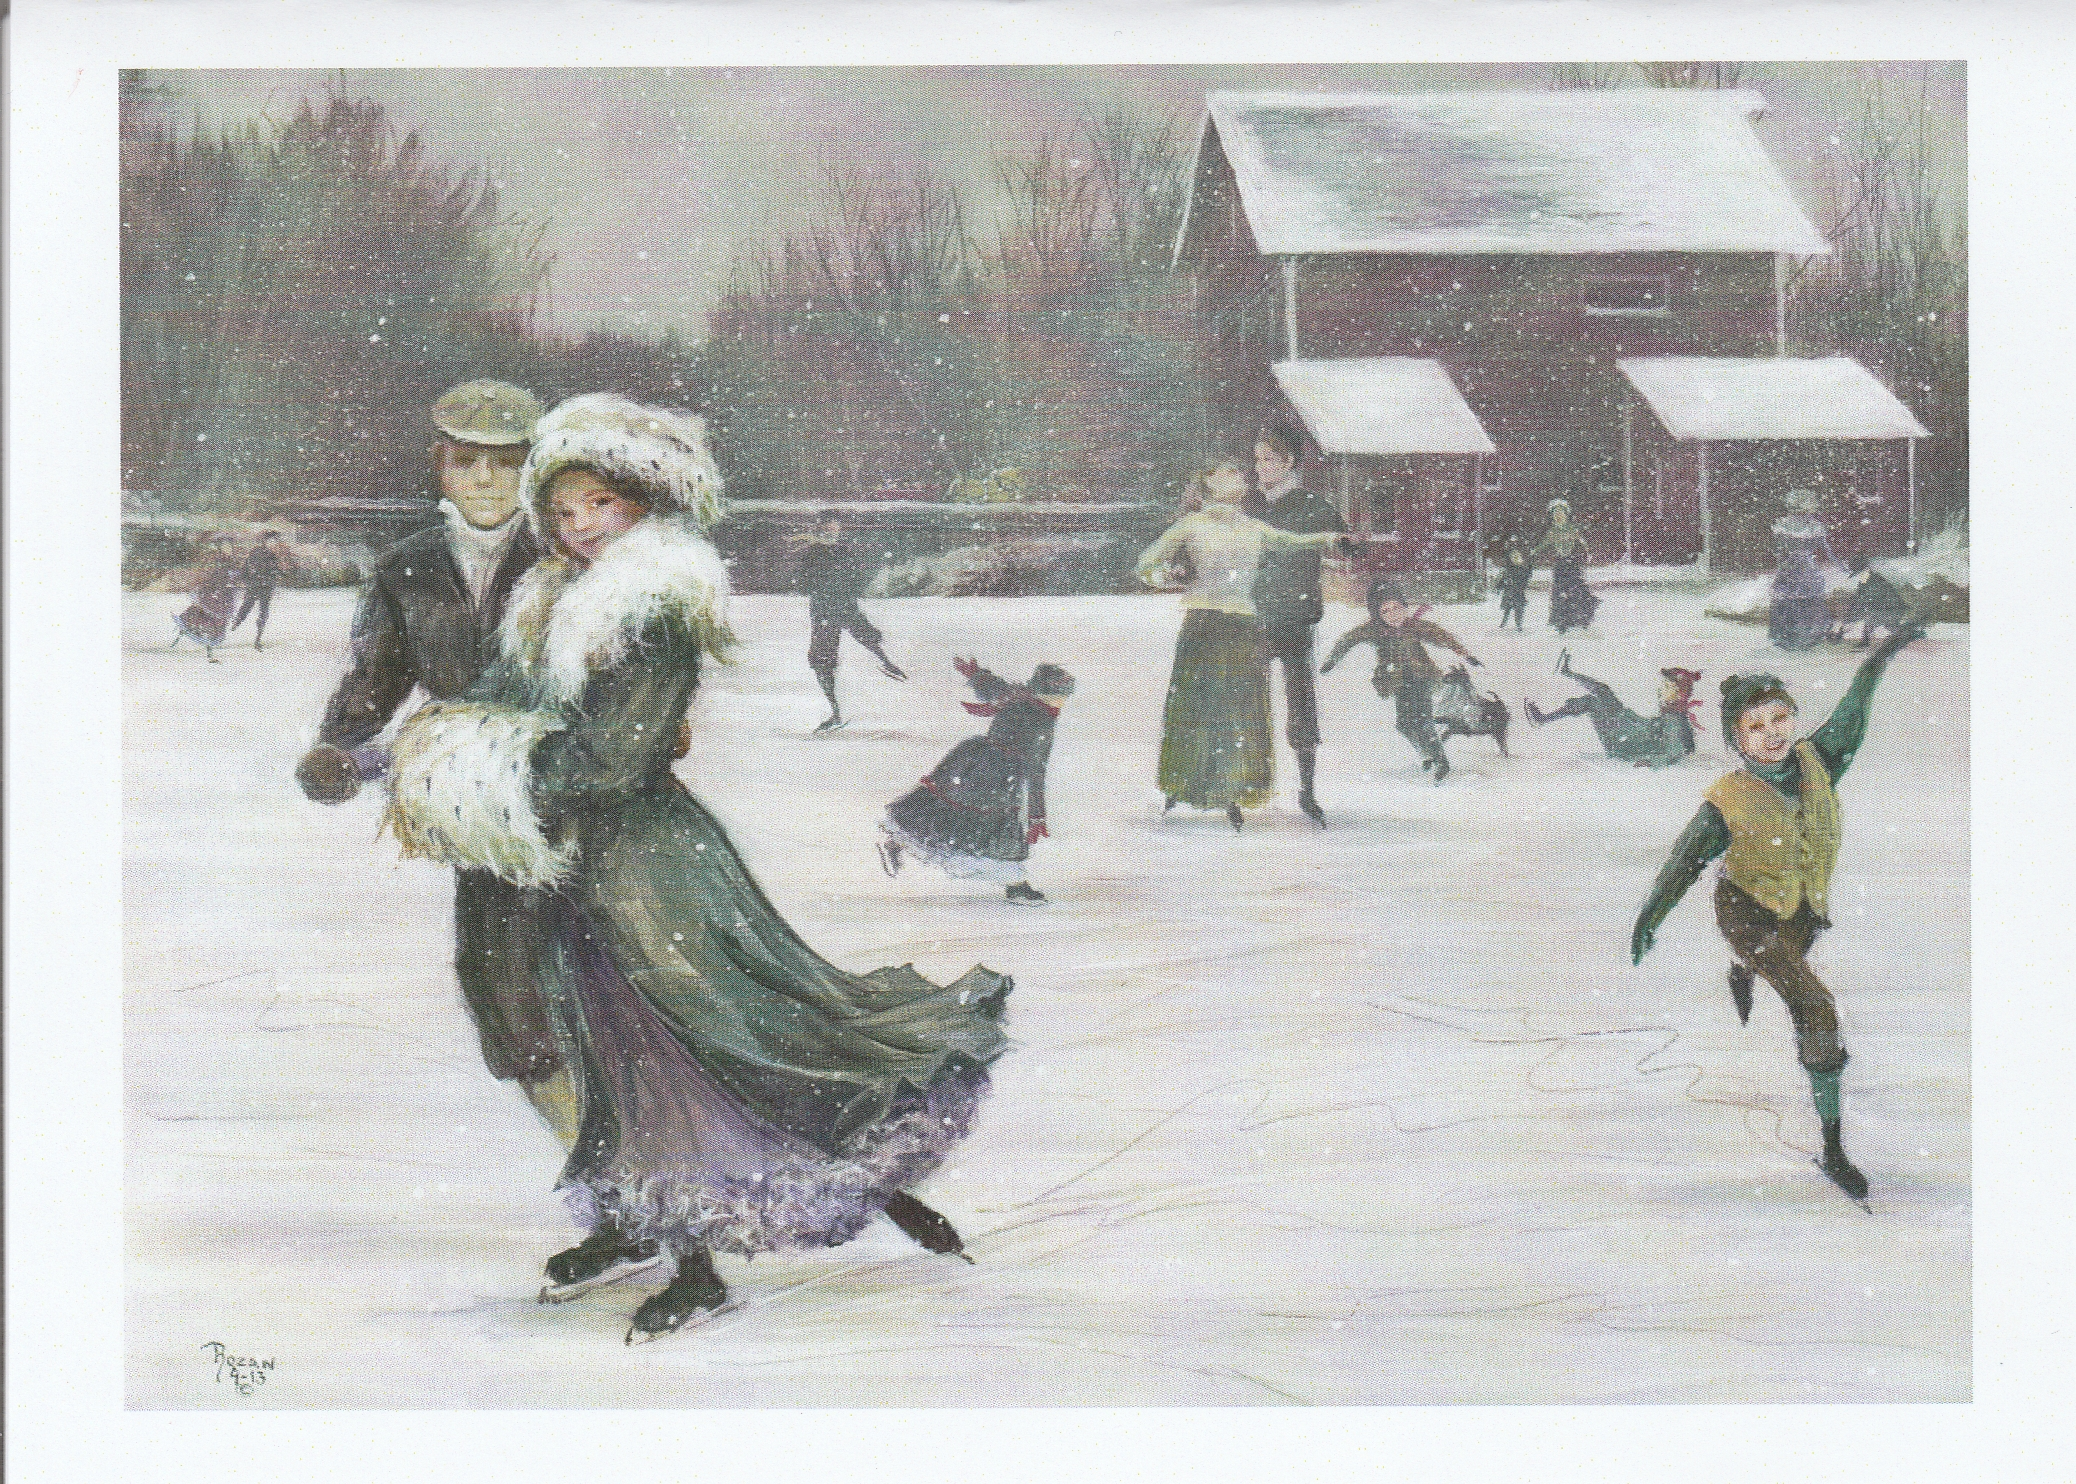 A Winter's day on Dell's Pond